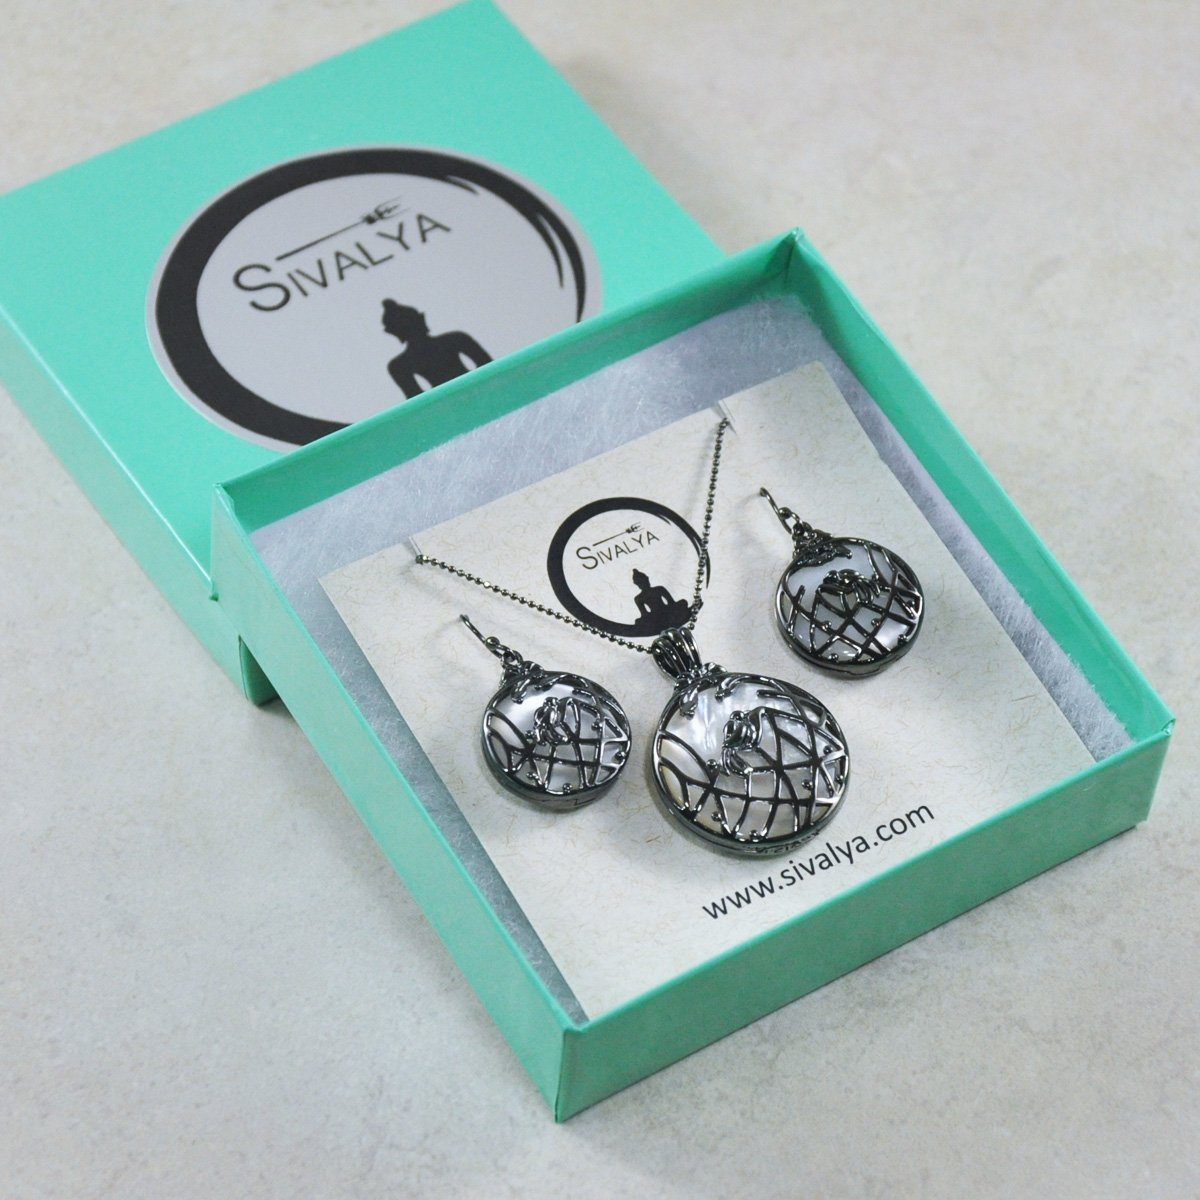 Sivalya Wildflower Moonstone Necklace and Earrings Set in 925 Sterling Silver with Black Rhodium Plated, Openable Frames – wear with or without the stone, Great Gift for Her!